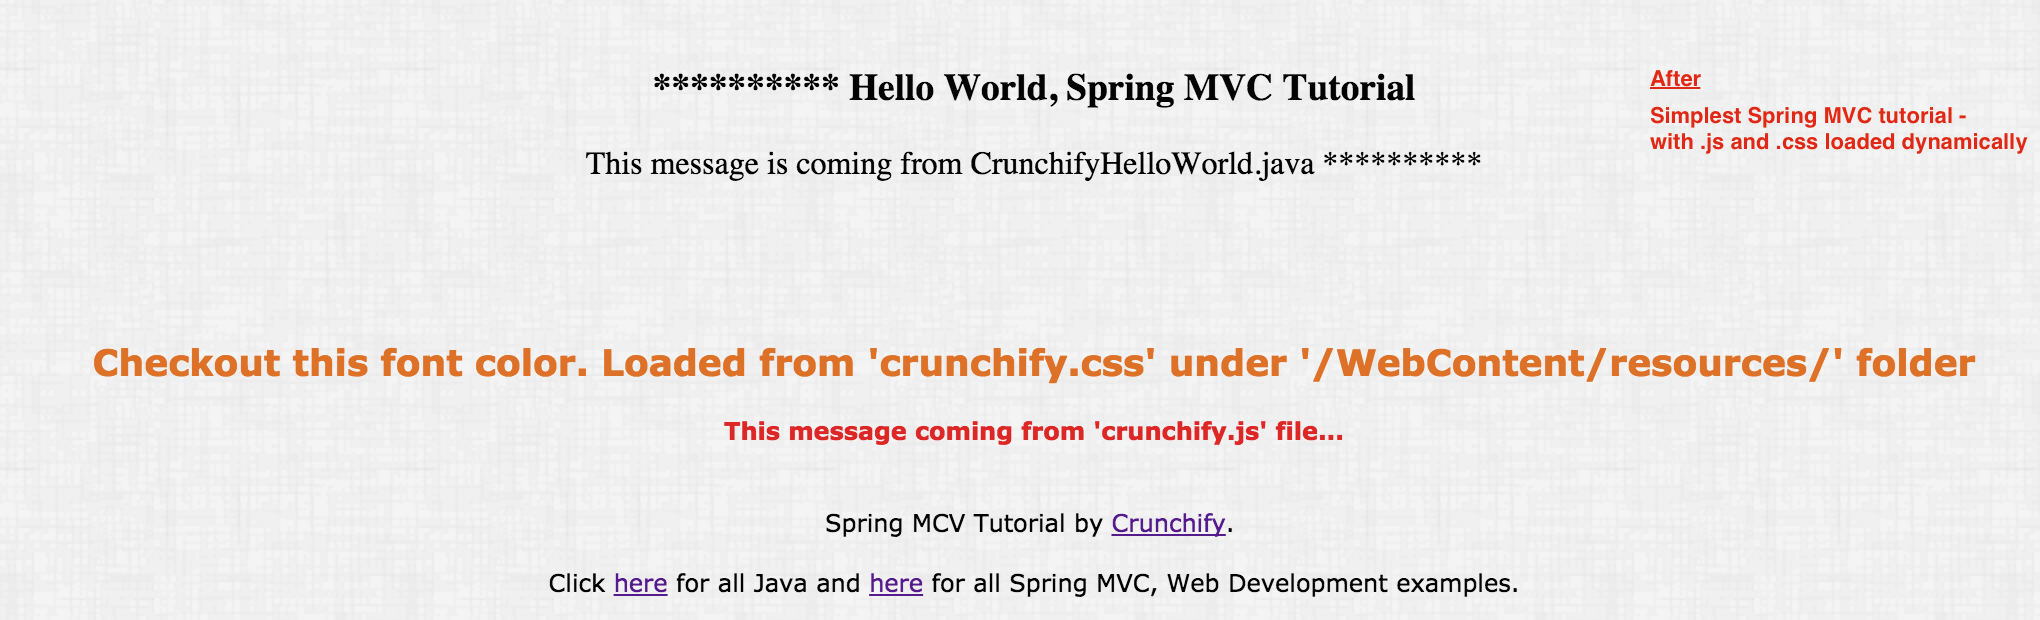 Spring MVC tutorial with JS and CSS loaded dynamically